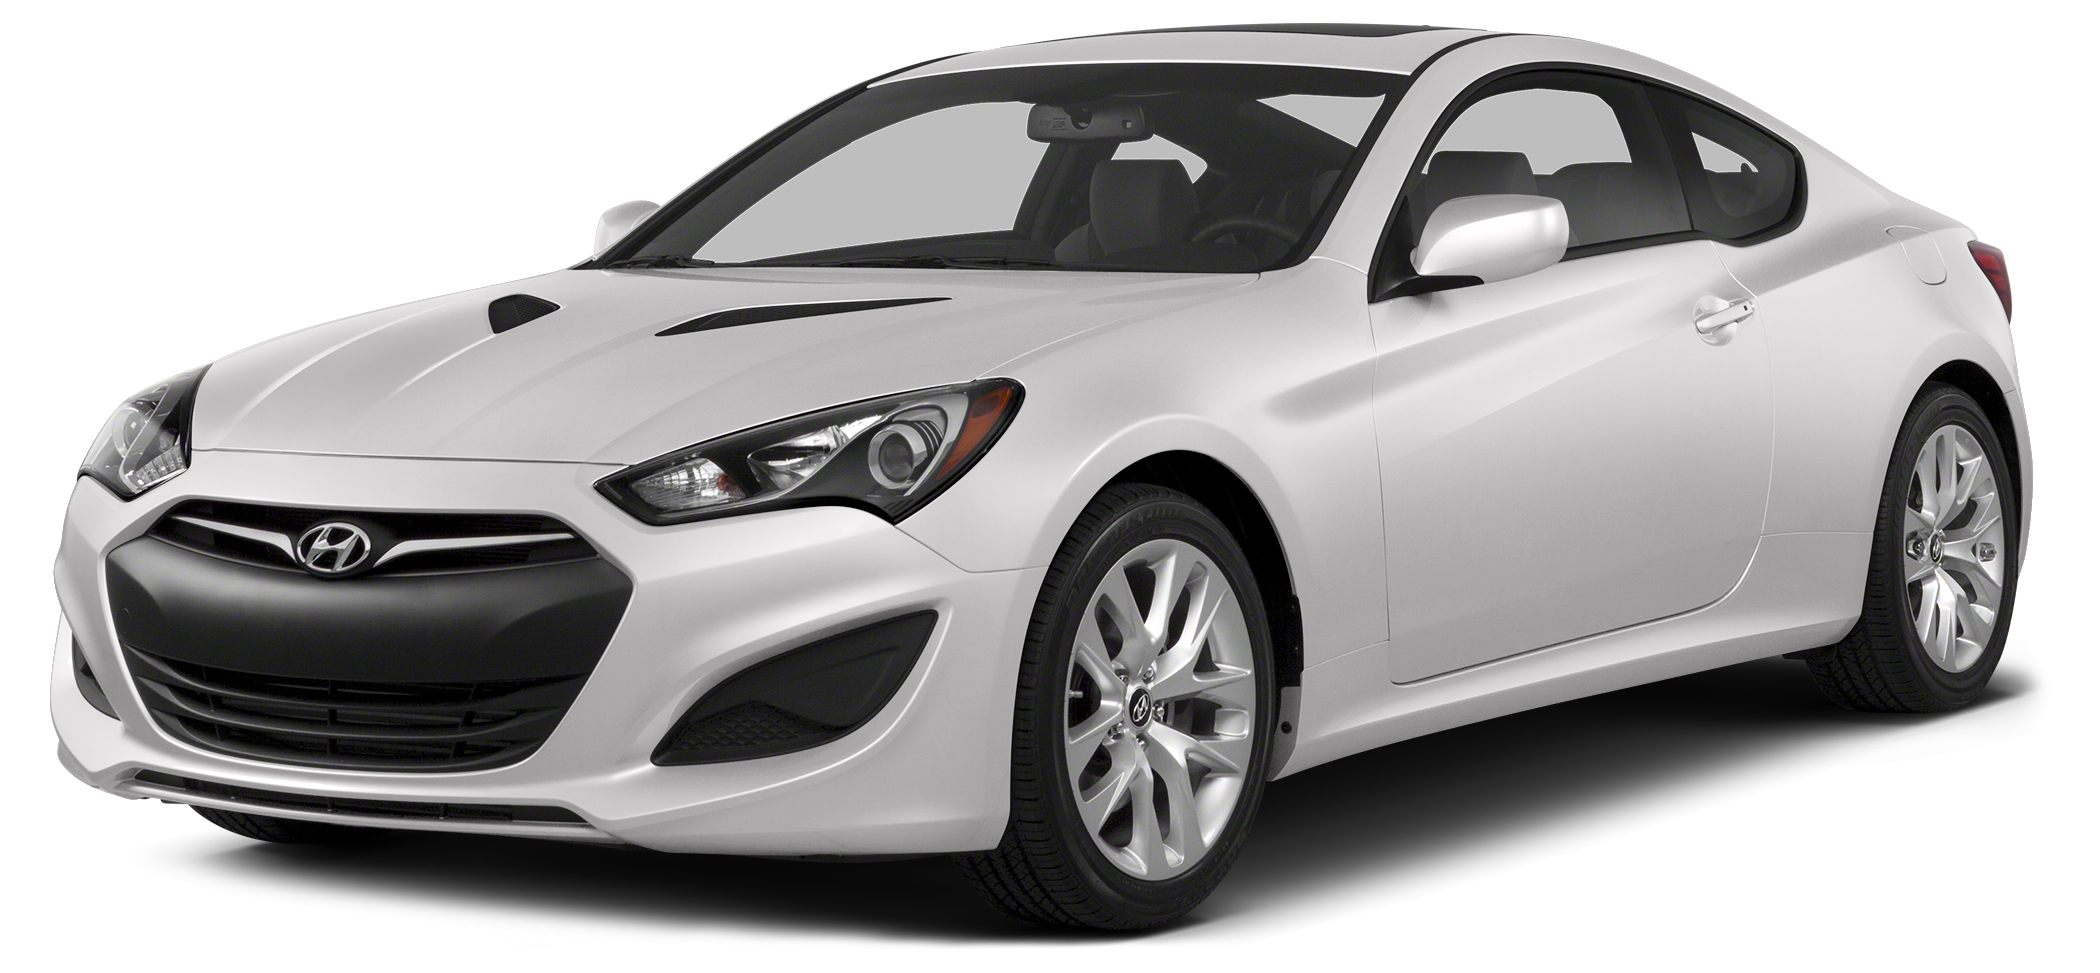 2014 Hyundai Genesis Coupe 20T R-Spec Color Casablanca White Stock H17963 VIN KMHHT6KD4EU1193